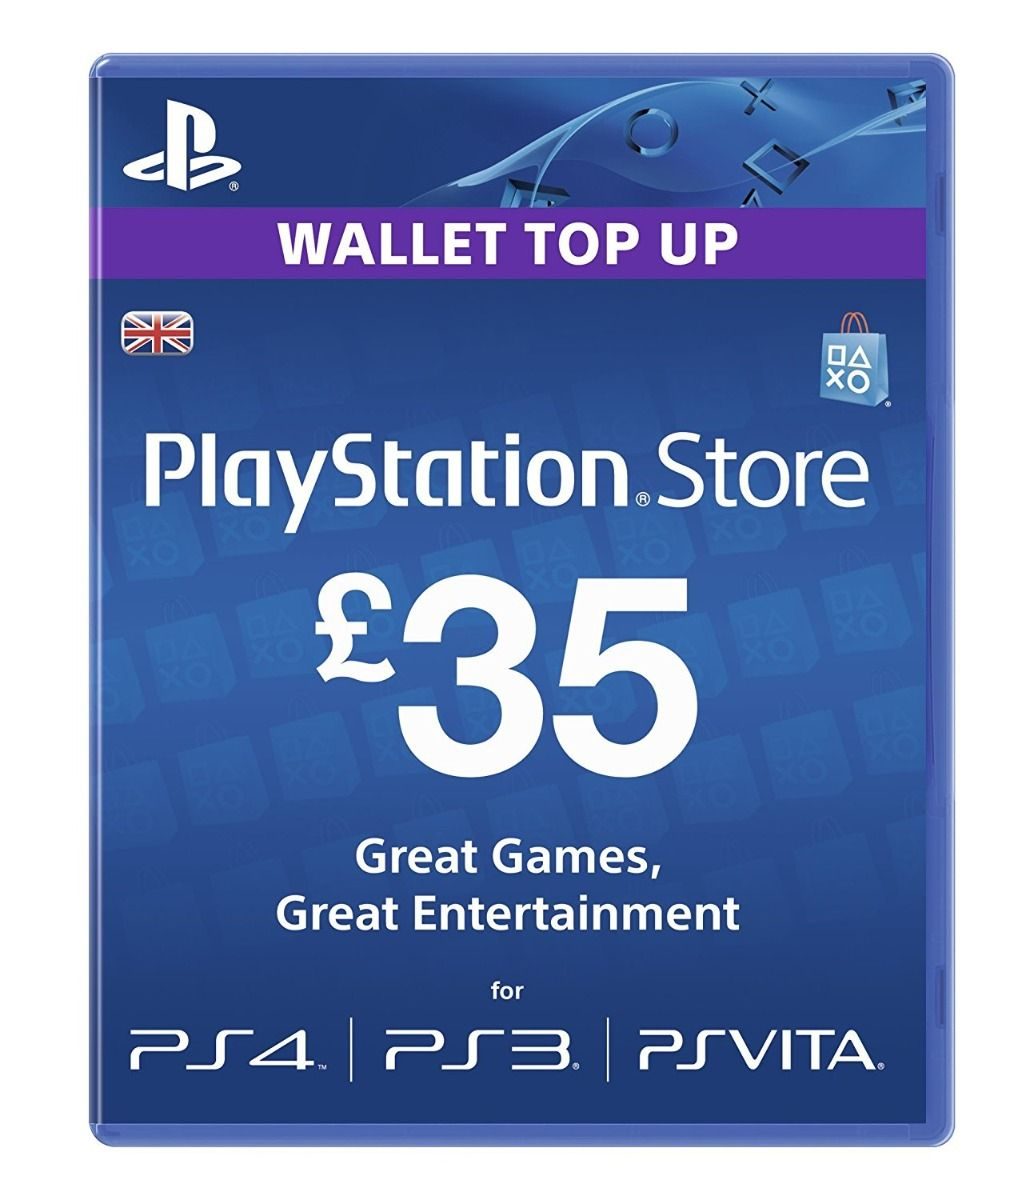 PlayStation Store £35 Gift Card